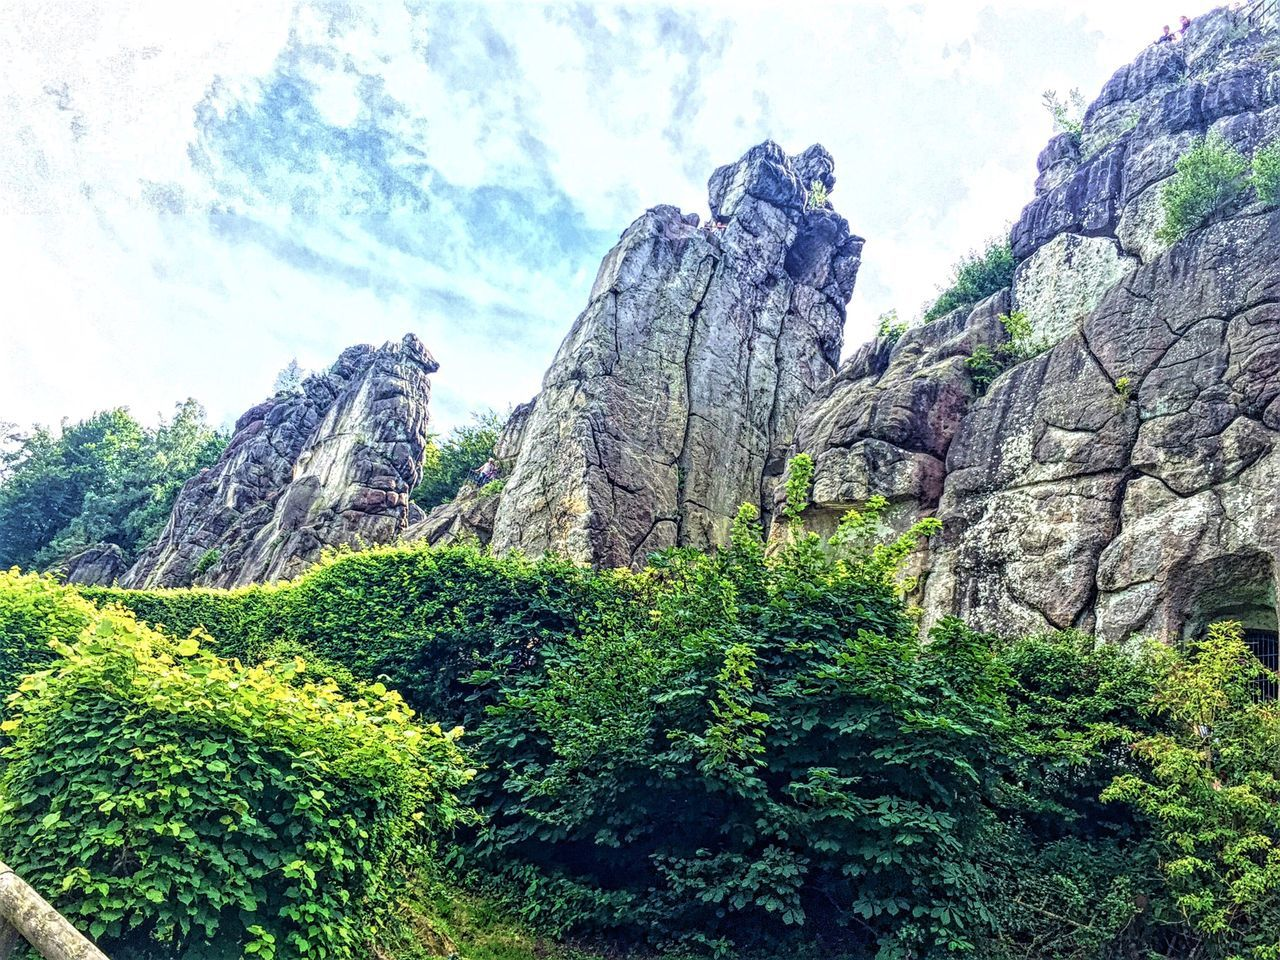 nature, beauty in nature, mountain, rock formation, day, green color, rock - object, tree, tranquility, scenics, outdoors, tranquil scene, no people, sky, physical geography, low angle view, plant, landscape, growth, grass